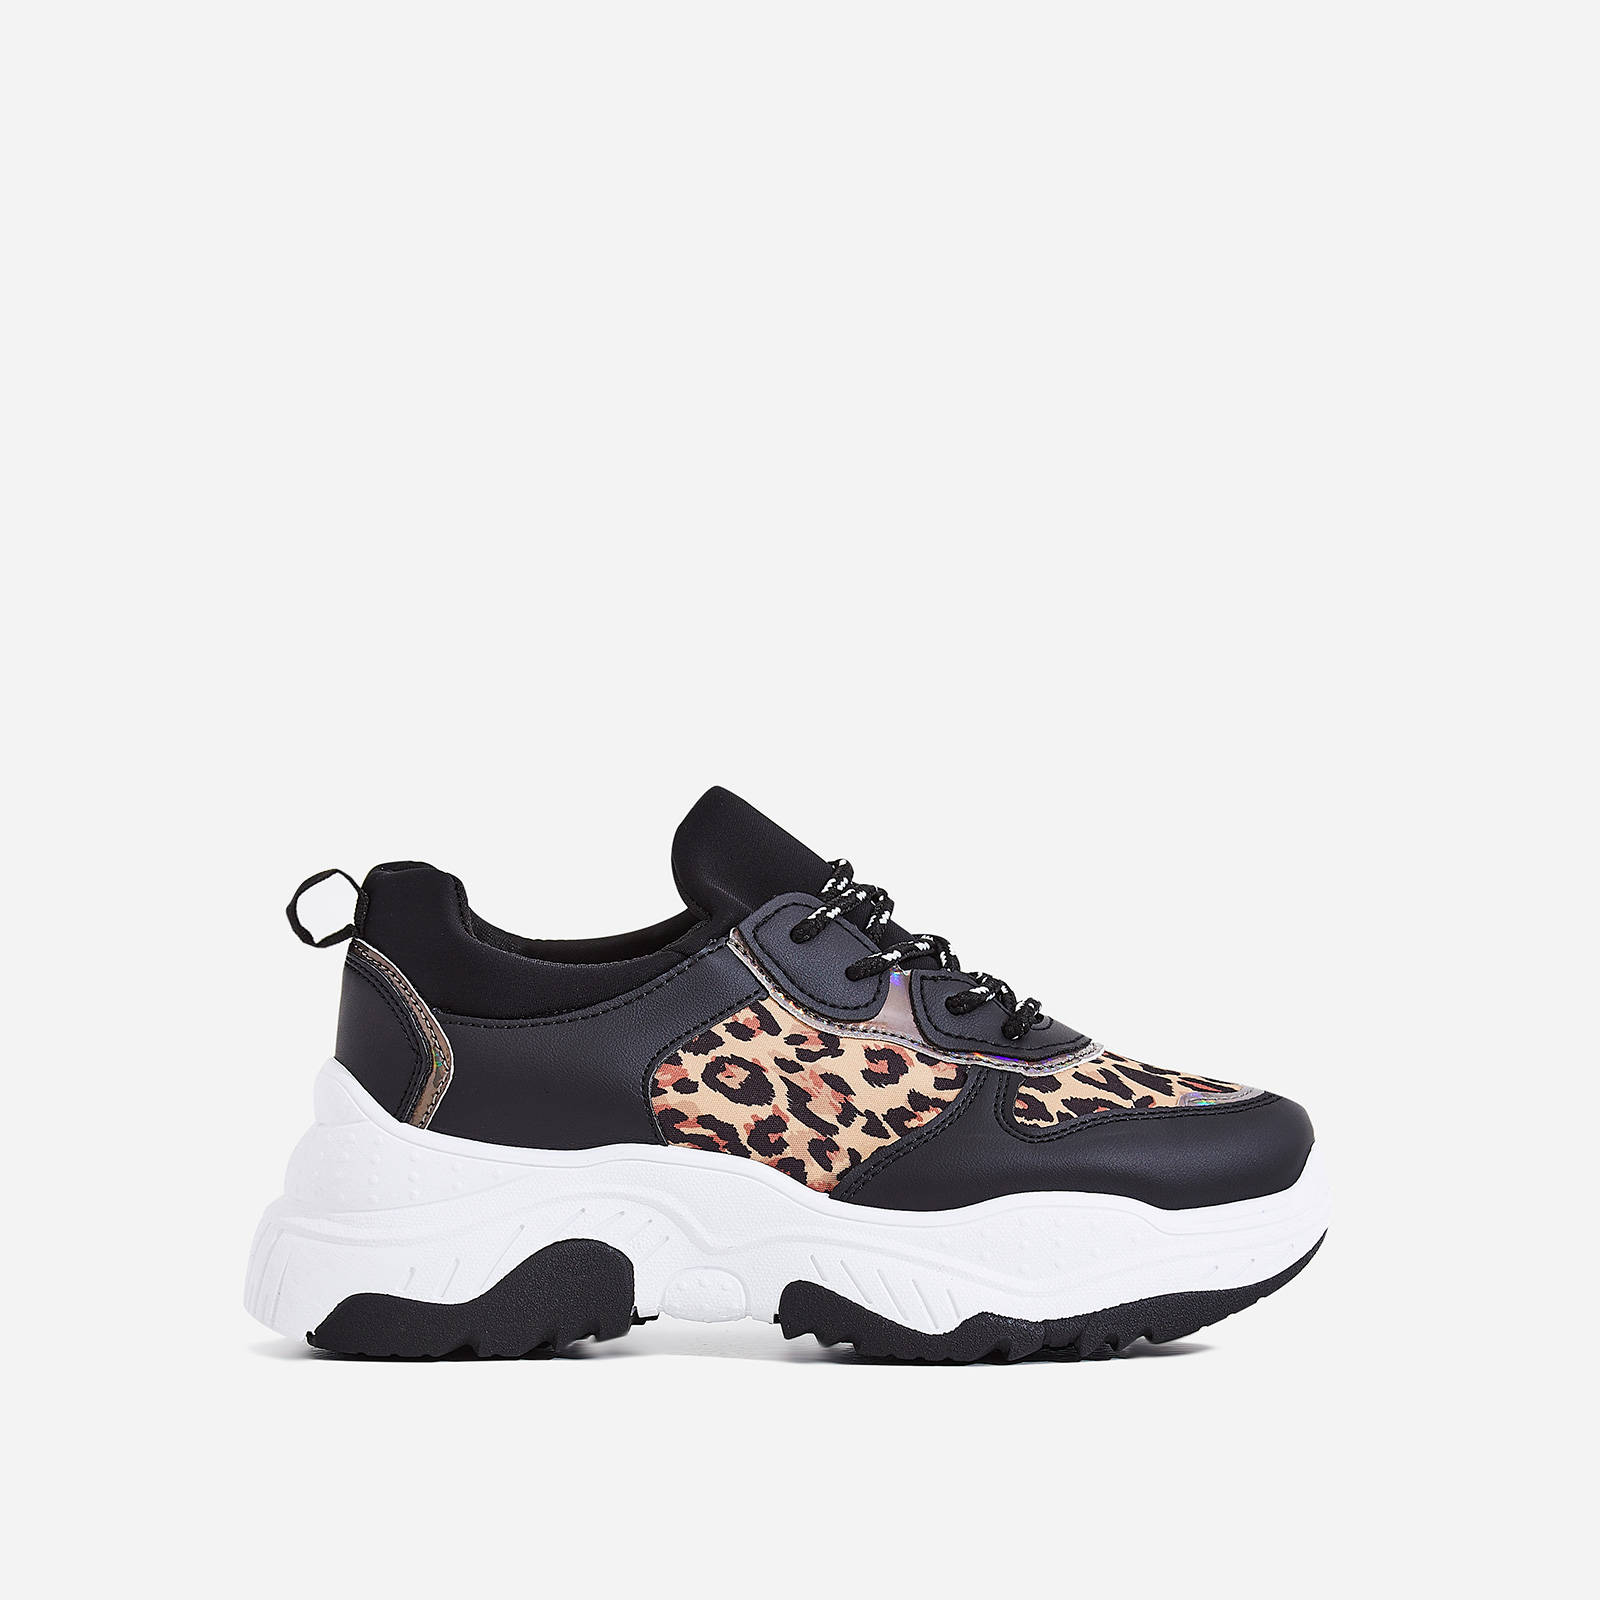 Alessio Chunky Sole Trainer In Black and Tan Leopard